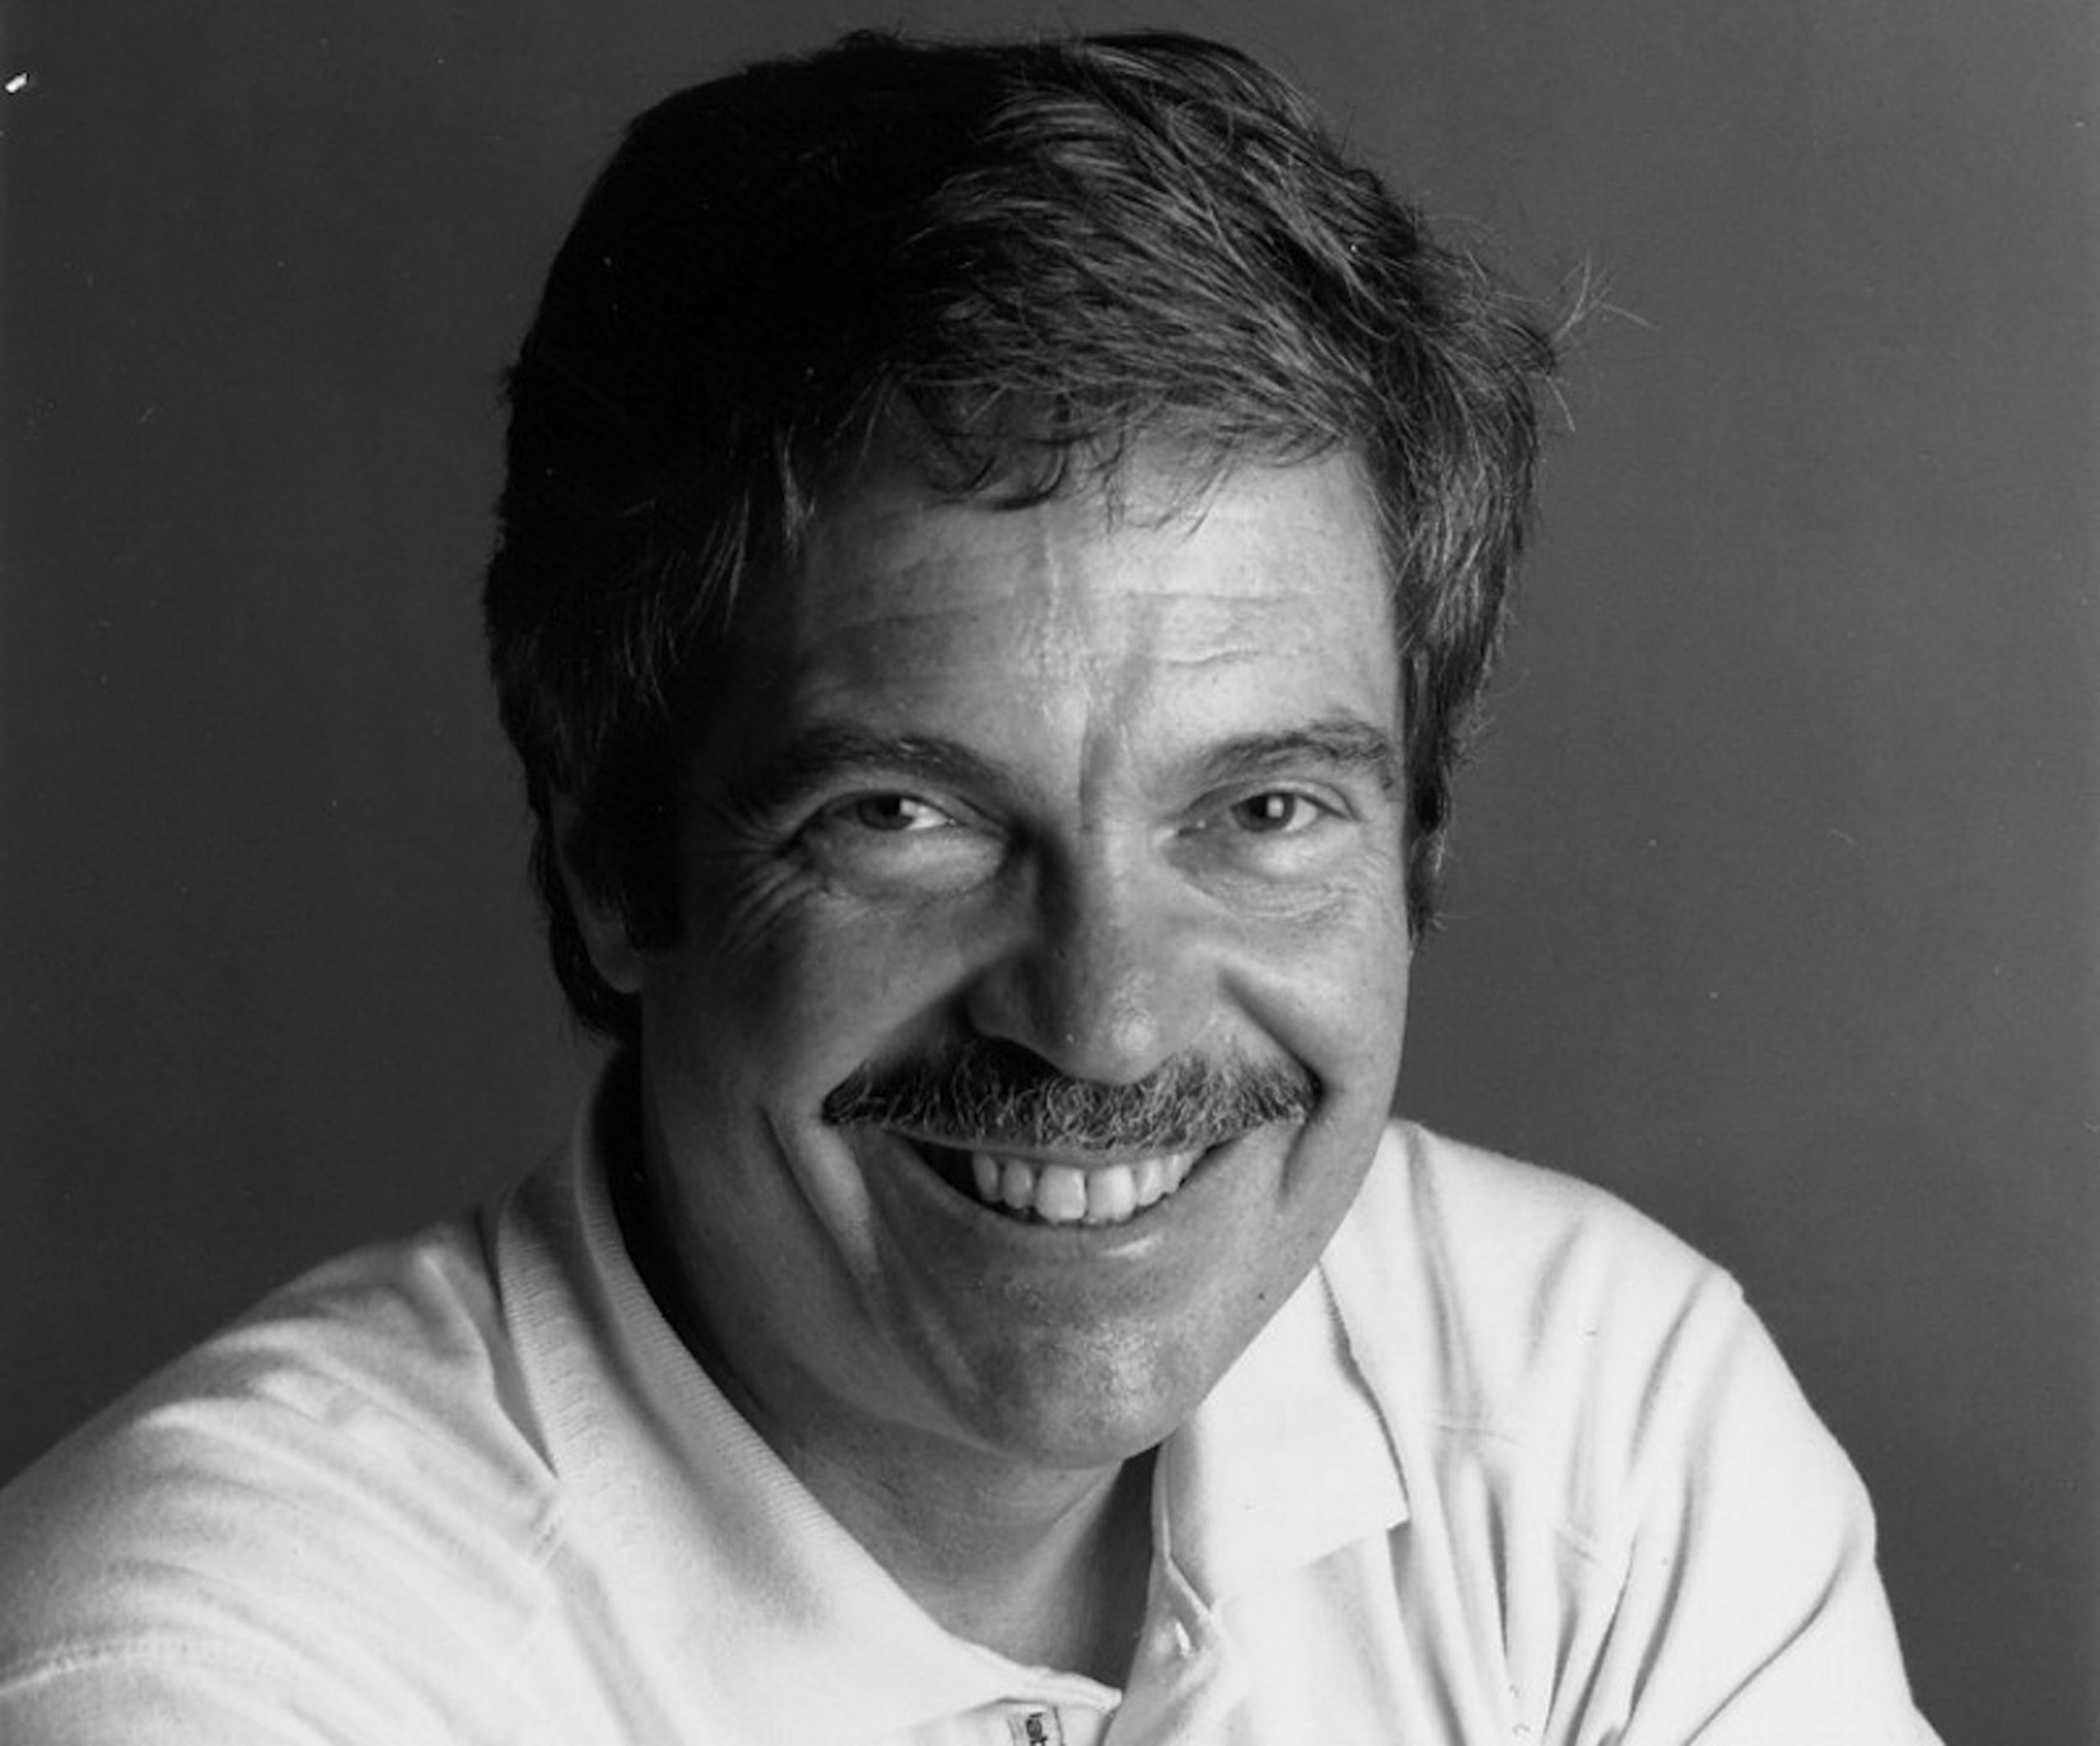 Personal computing pioneer Alan Kay, an alumnus of the University of Utah, will give a keynote presentation at 6 p.m. Tuesday, Nov. 13 in the university's Warnock Engineering Building. His lecture is part of SCIx, an